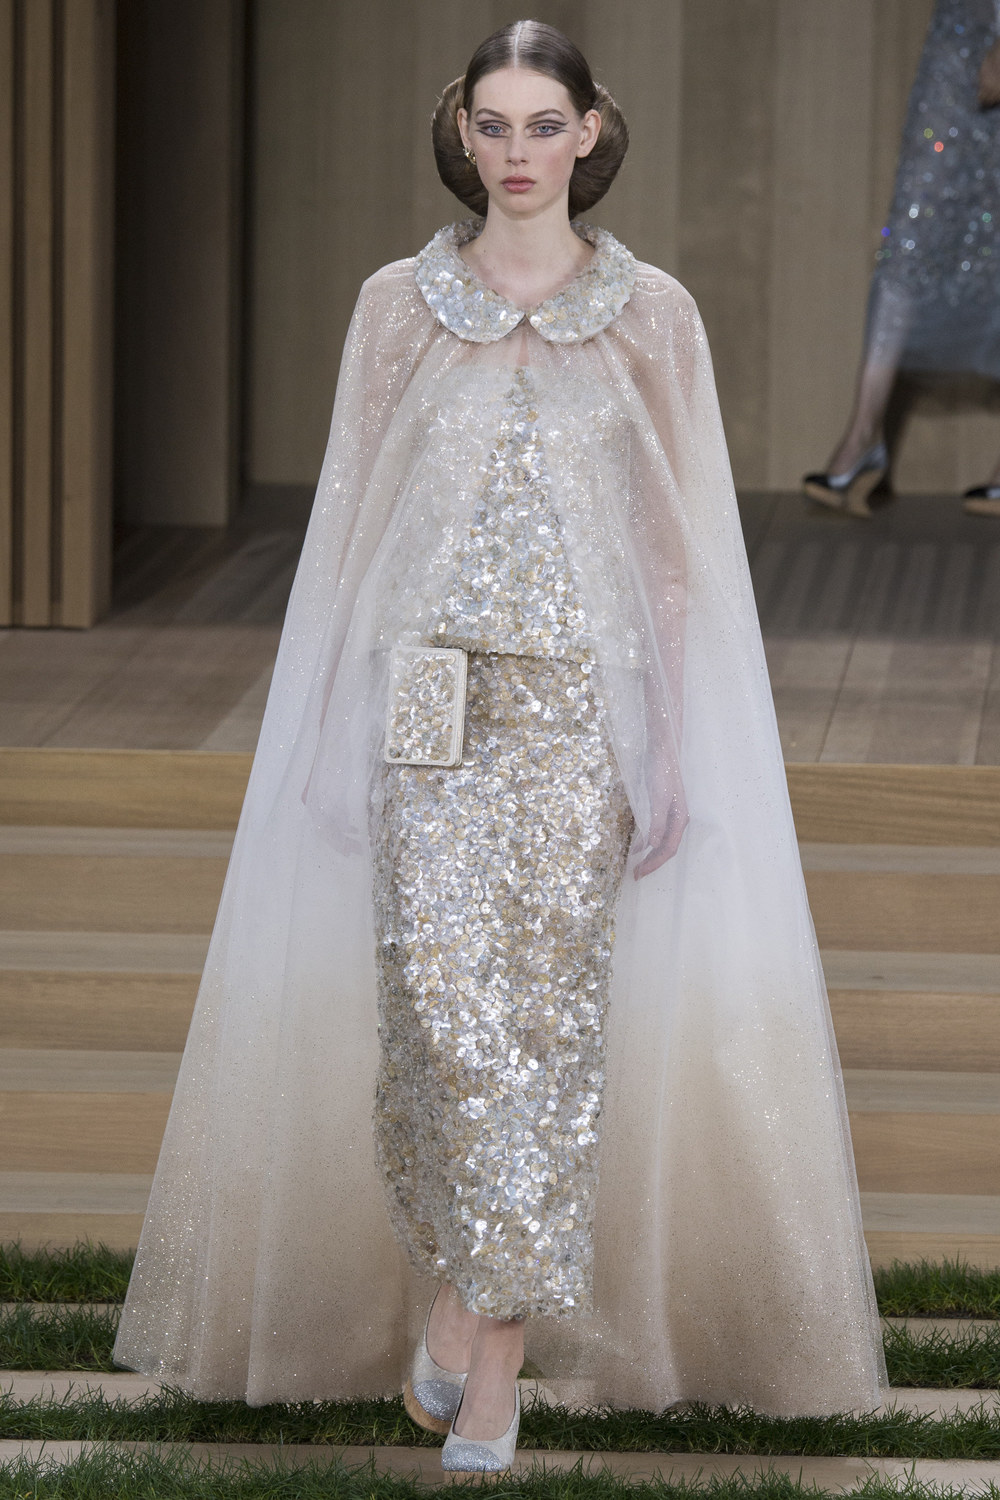 Chanel-Couture-Spring-2016-Paris-Fashion-Week-19.jpg